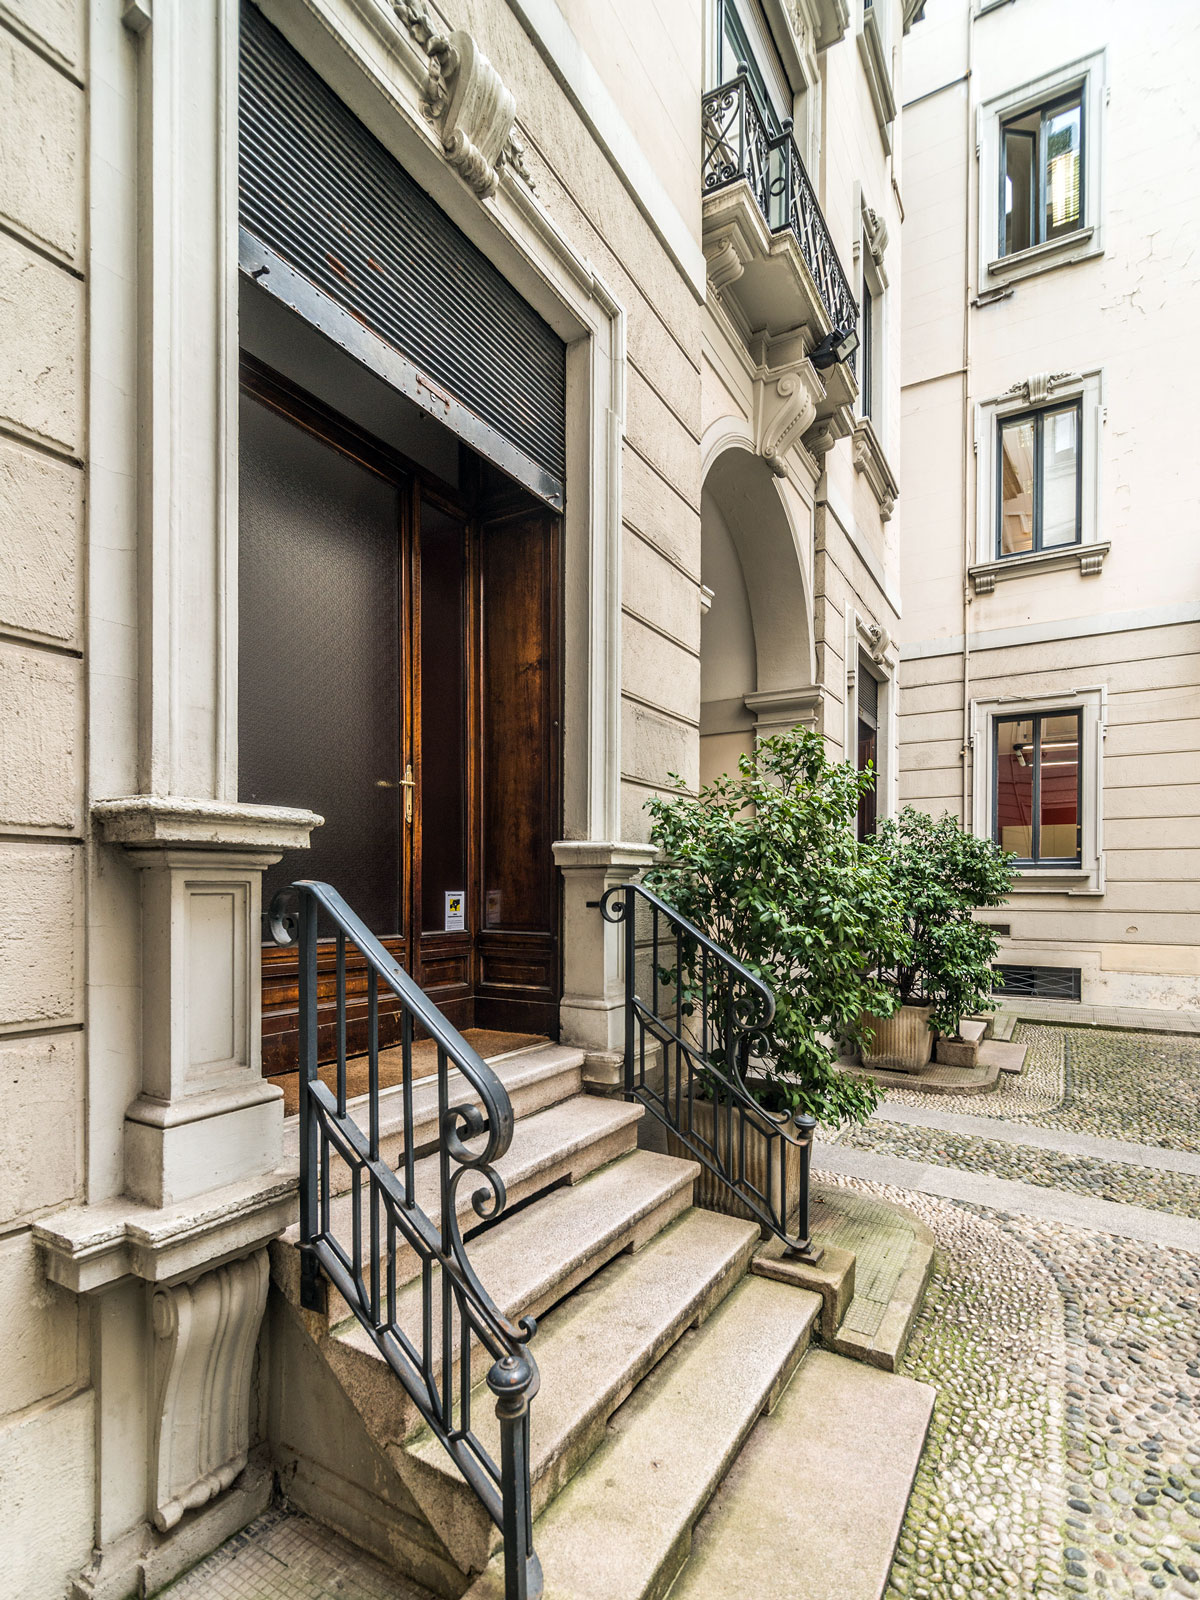 Additional photo for property listing at Elegant and quite office in historic building Corso Magenta Milano, Milan 20123 Italien